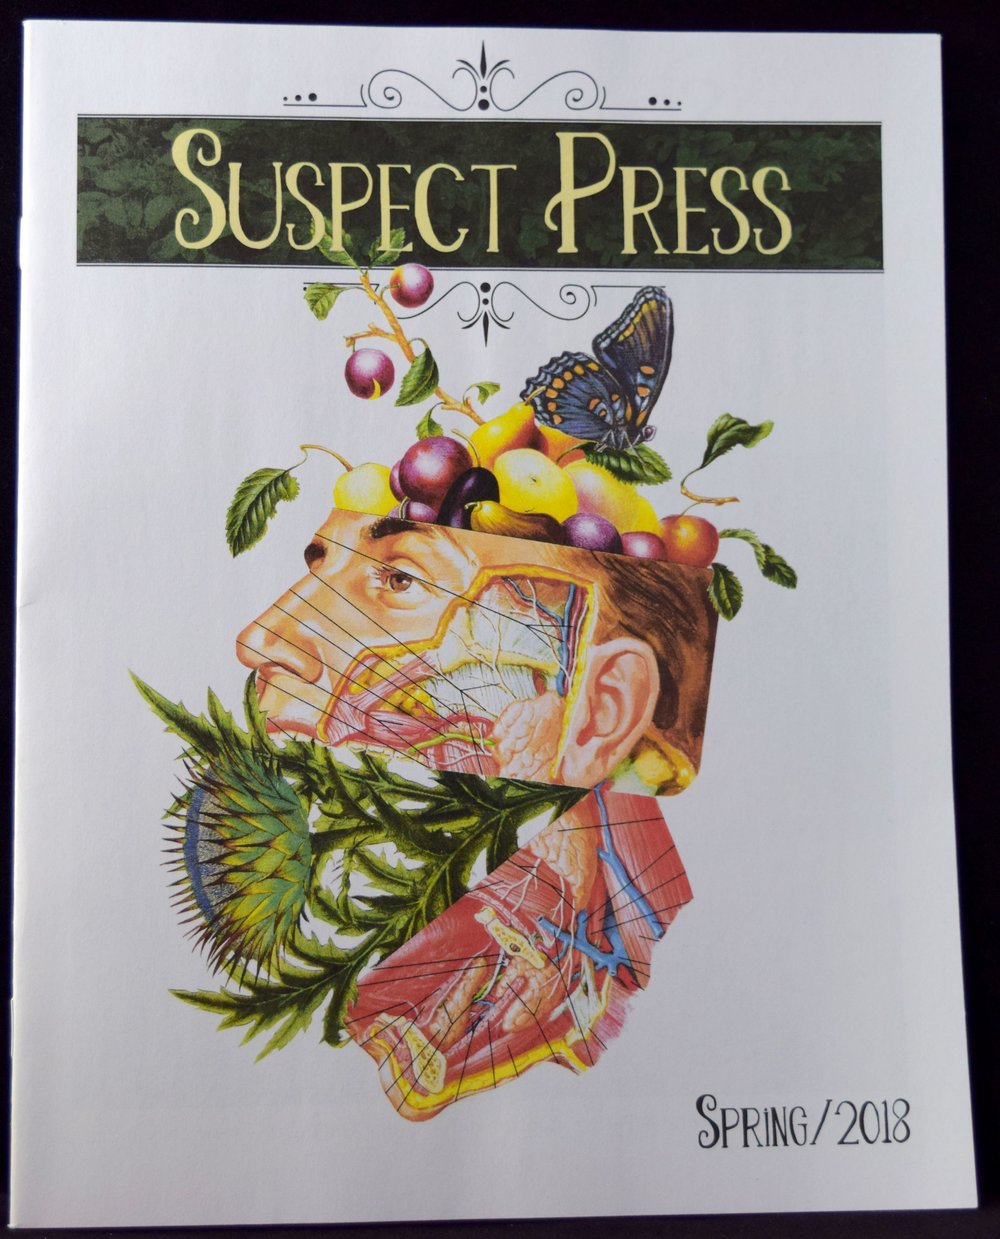 The Spring 2018 edition of Suspect Press.